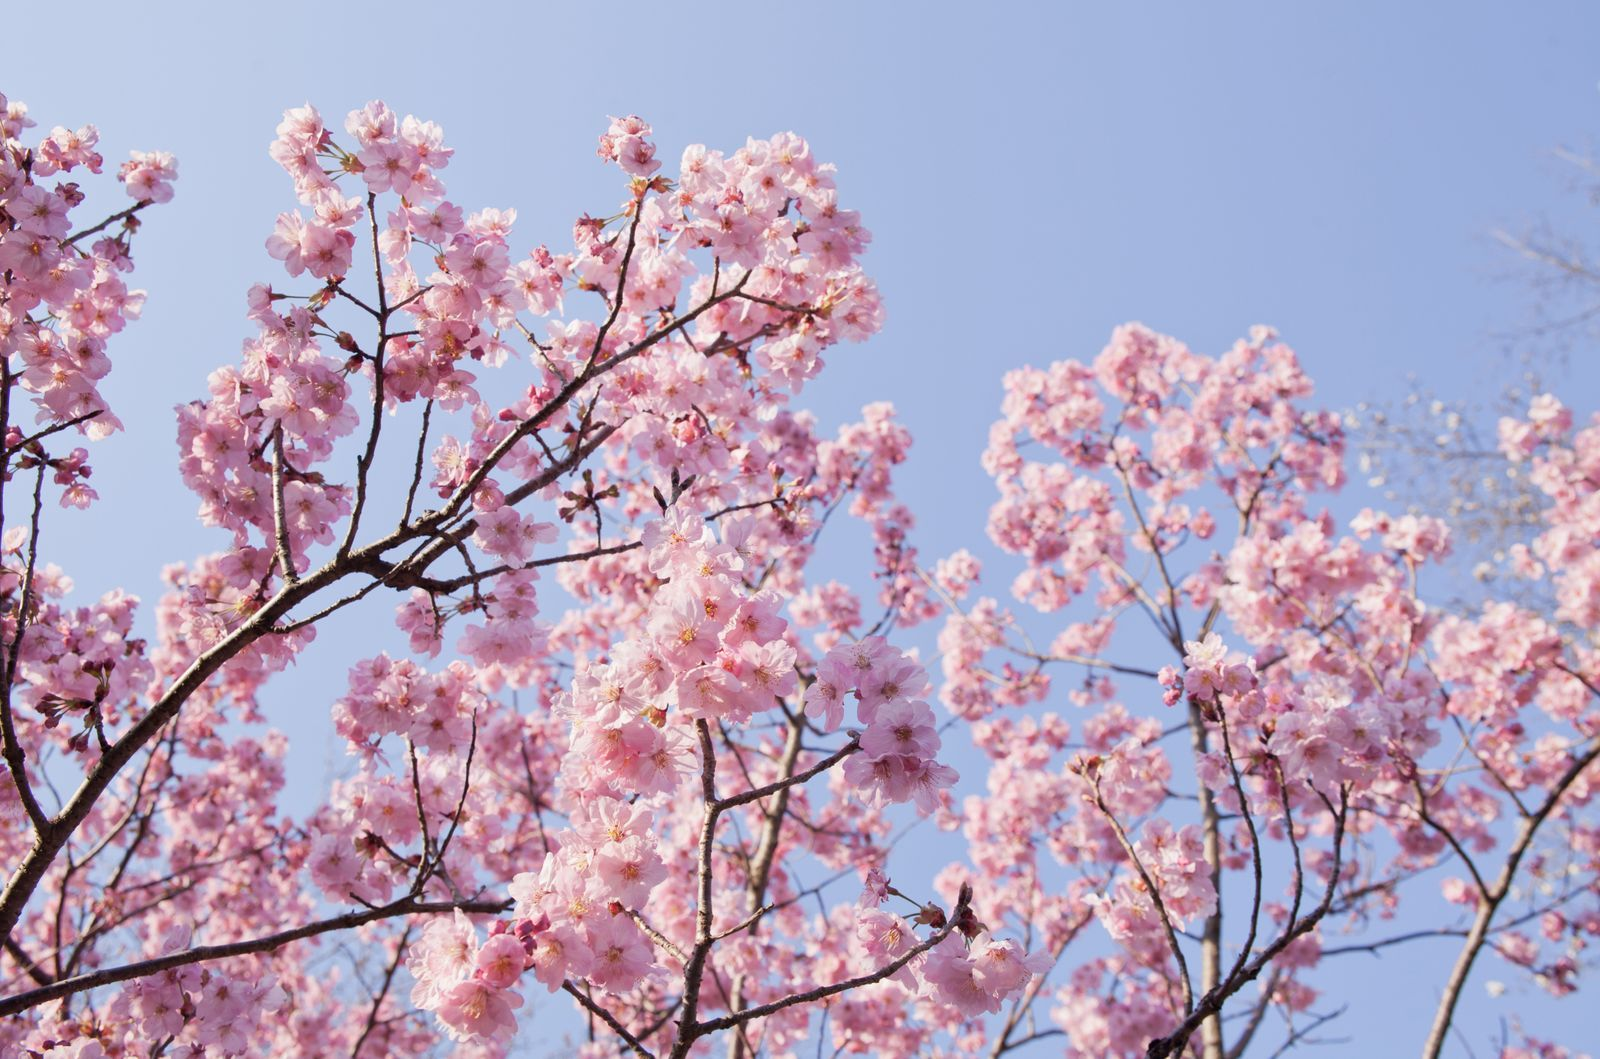 Cherry Blossom Tree Facts That You Definitely Never Knew Before In 2020 Spring Flowering Trees Cherry Blossom Flowers Cherry Blossom Tree